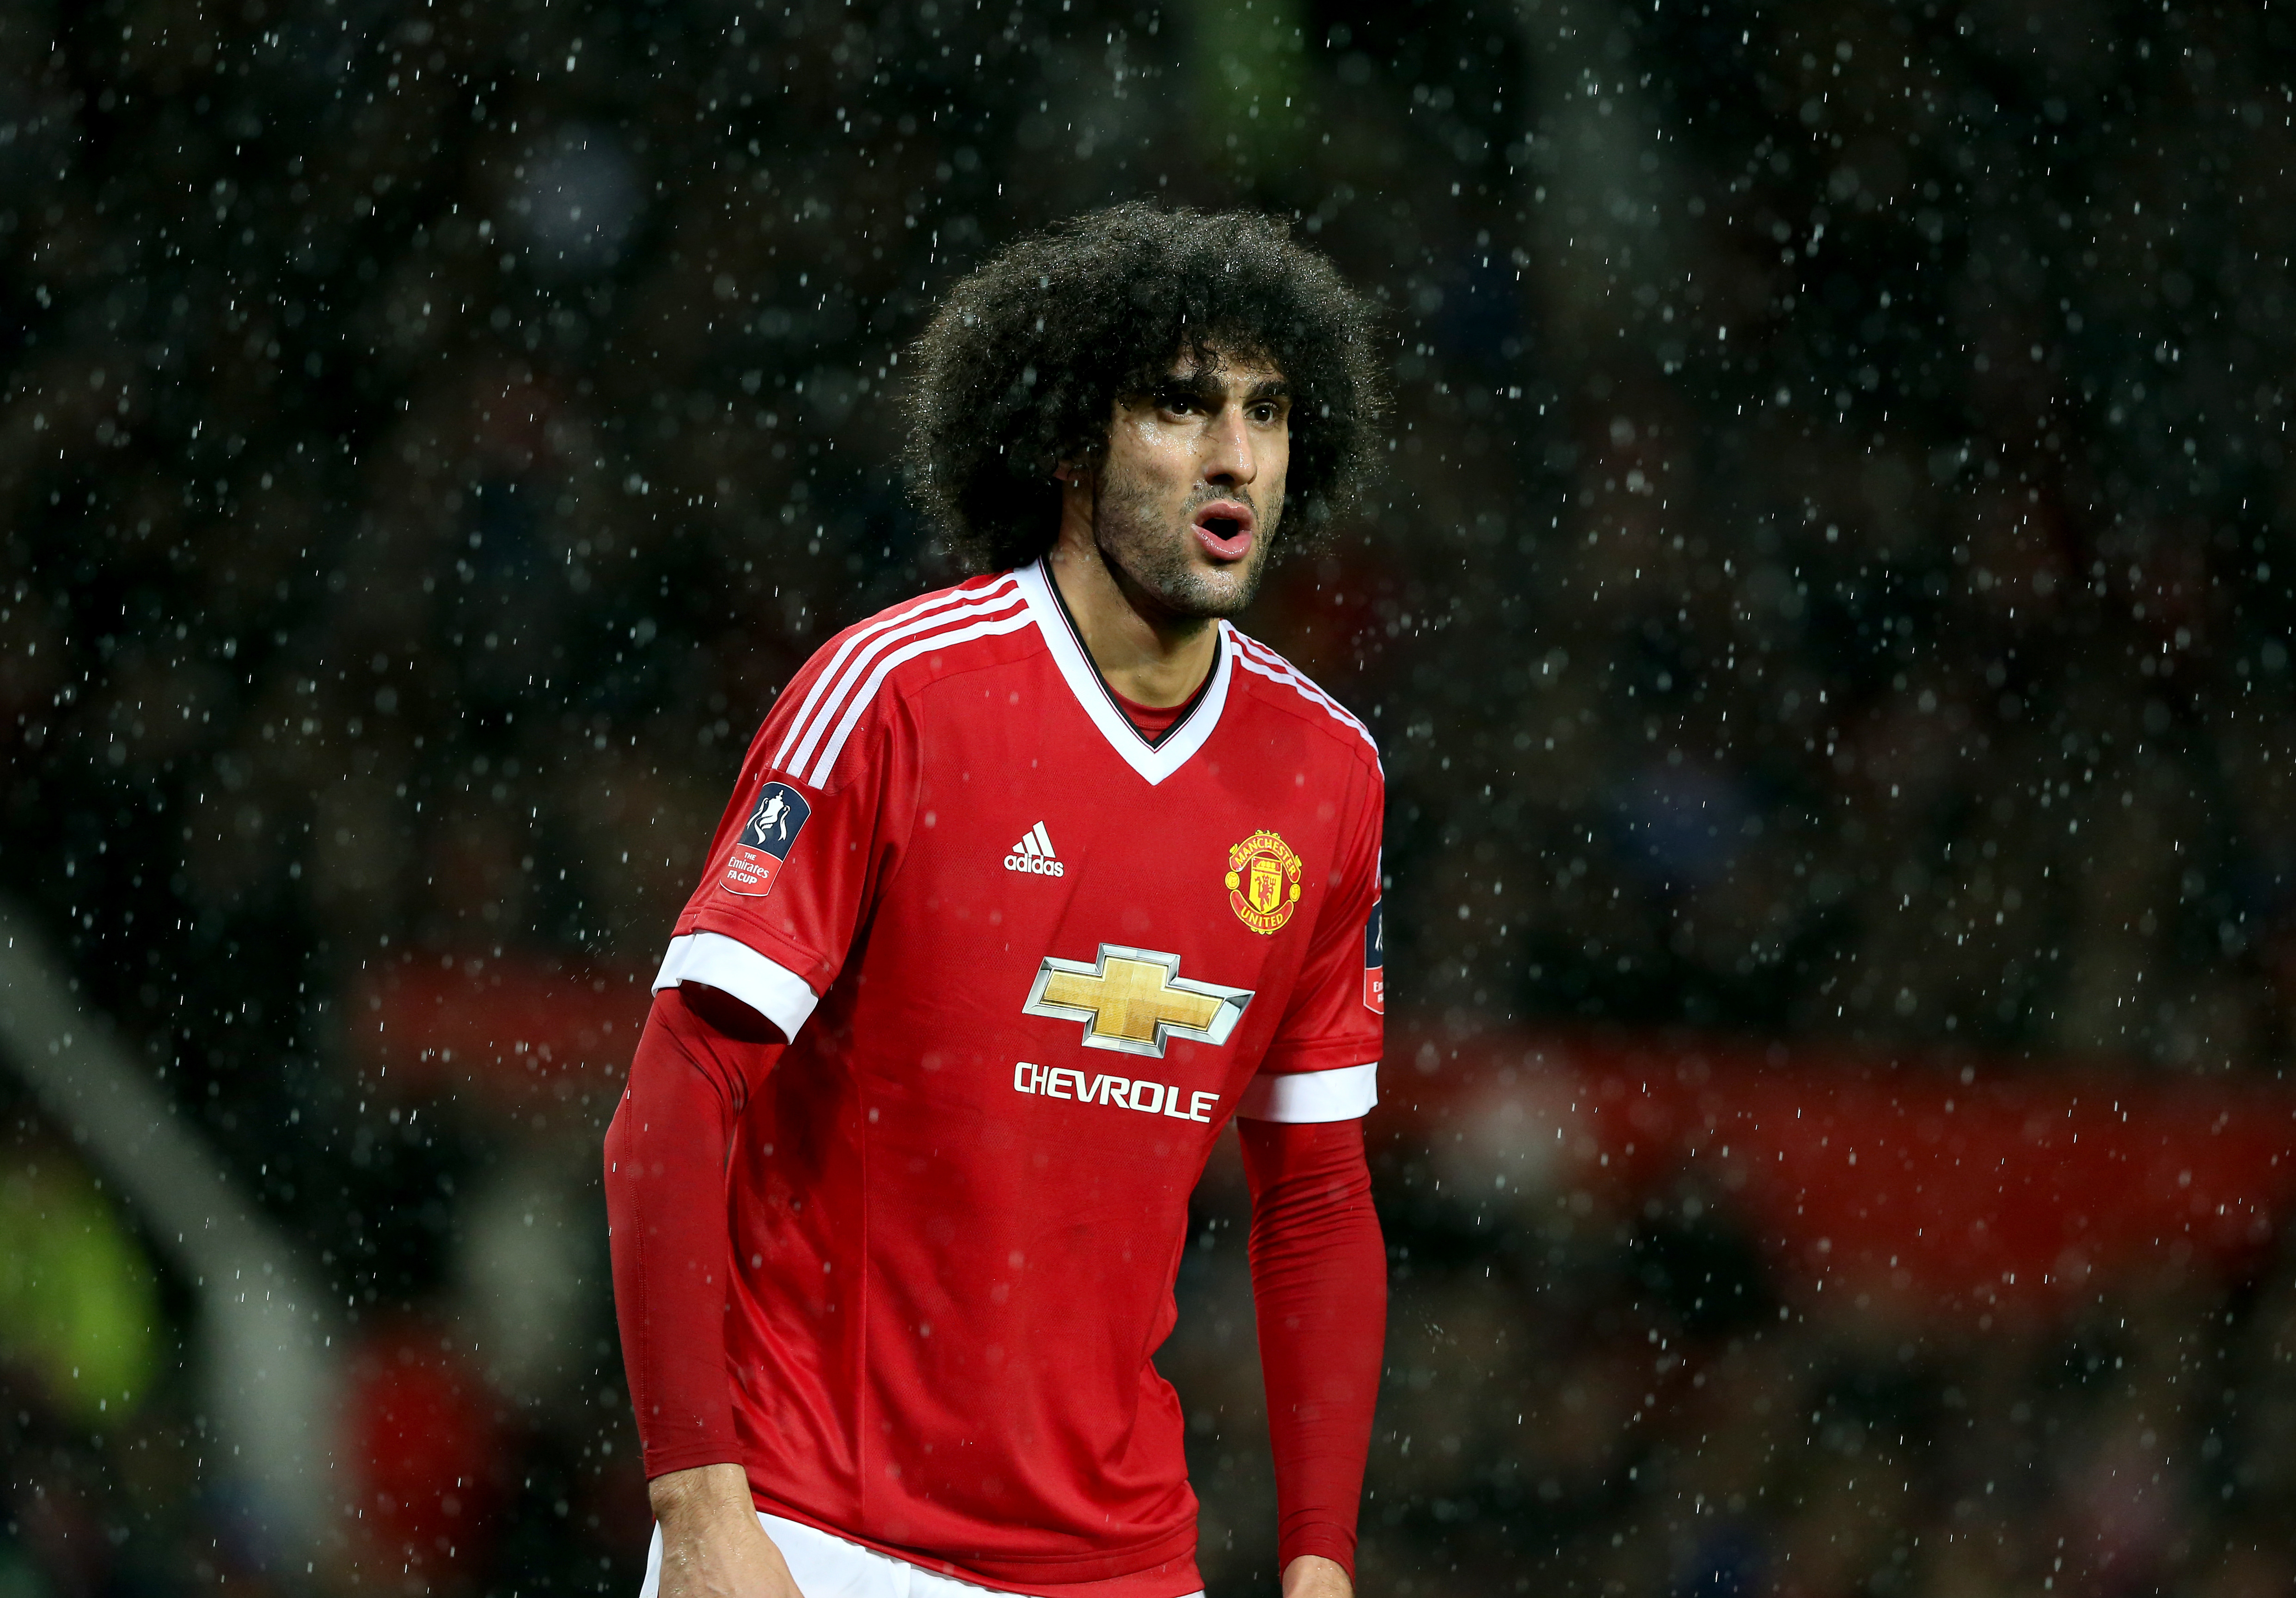 Marouane Fellaini Is Suing New Balance For A Bizarre Reason